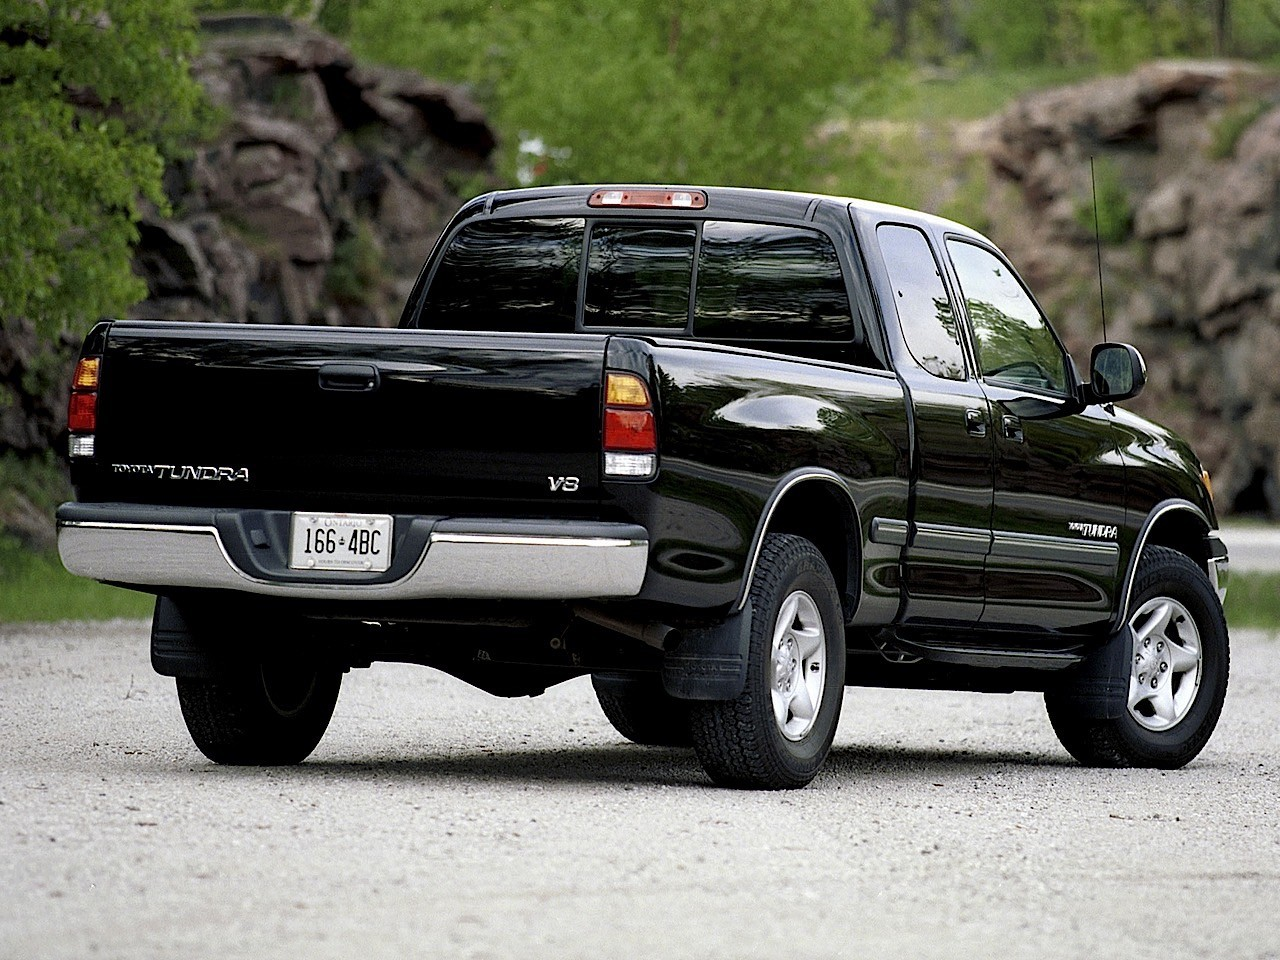 Toyota Tundra Lifted >> TOYOTA Tundra Access Cab specs & photos - 1999, 2000, 2001, 2002, 2003 - autoevolution